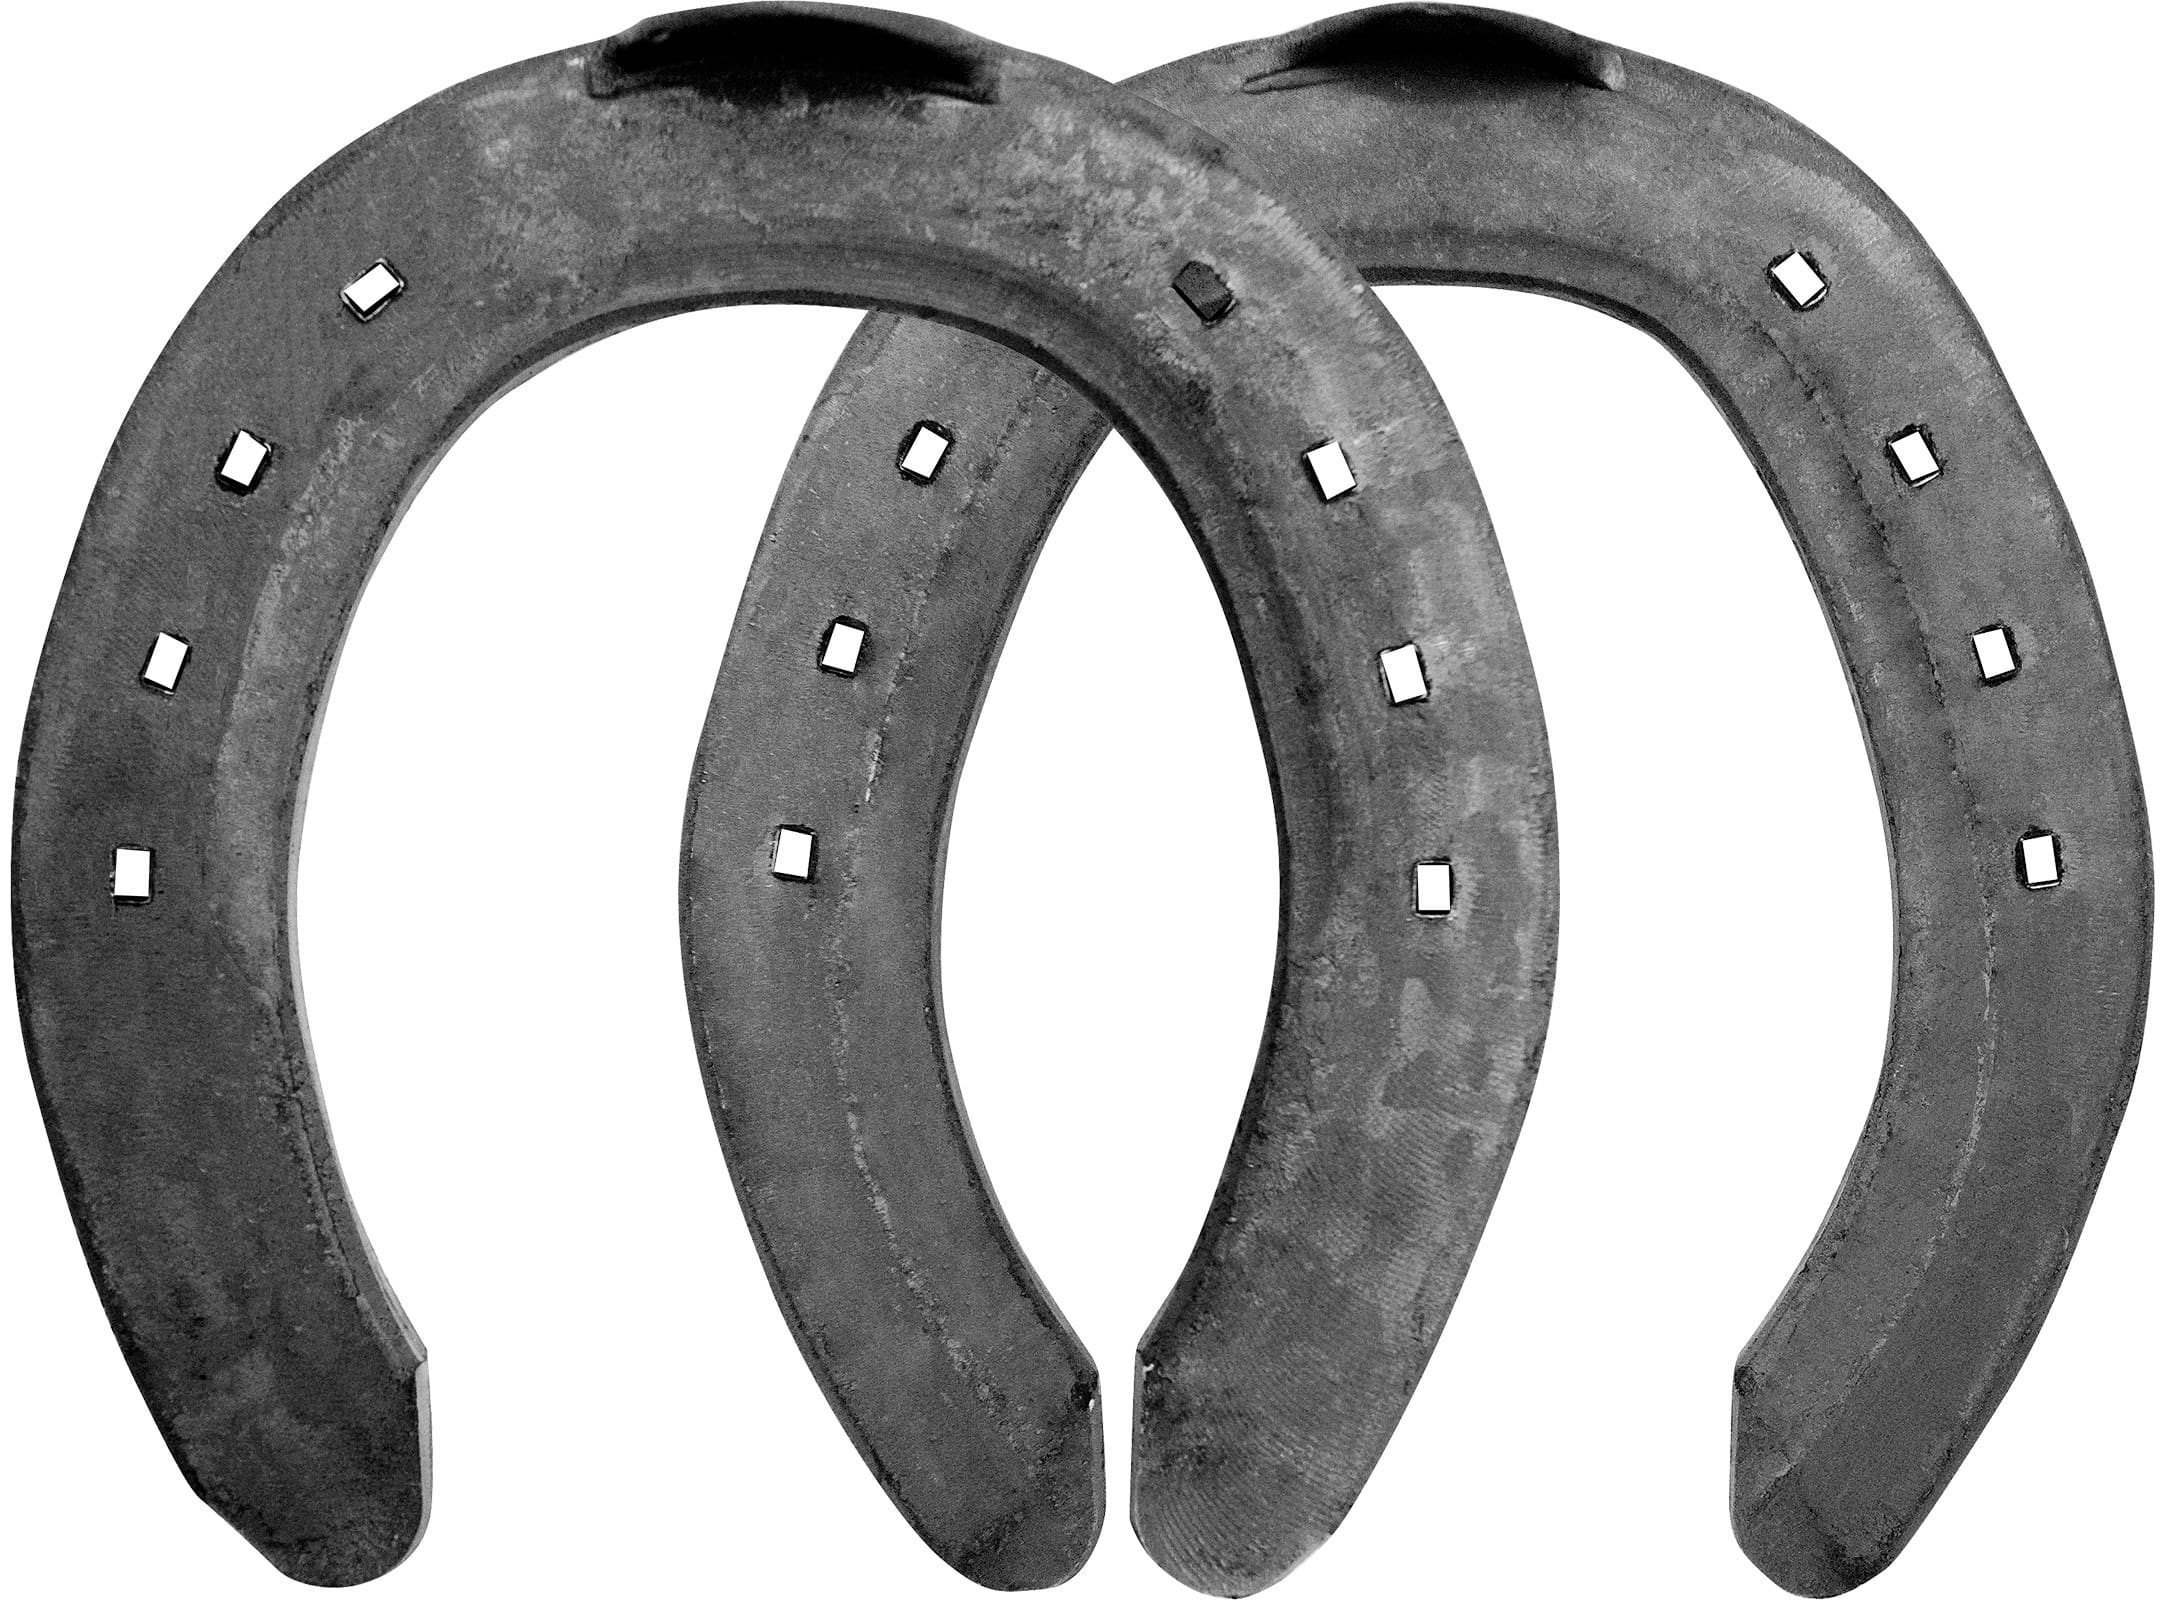 Mustad SM horseshoes, front and hind, top view